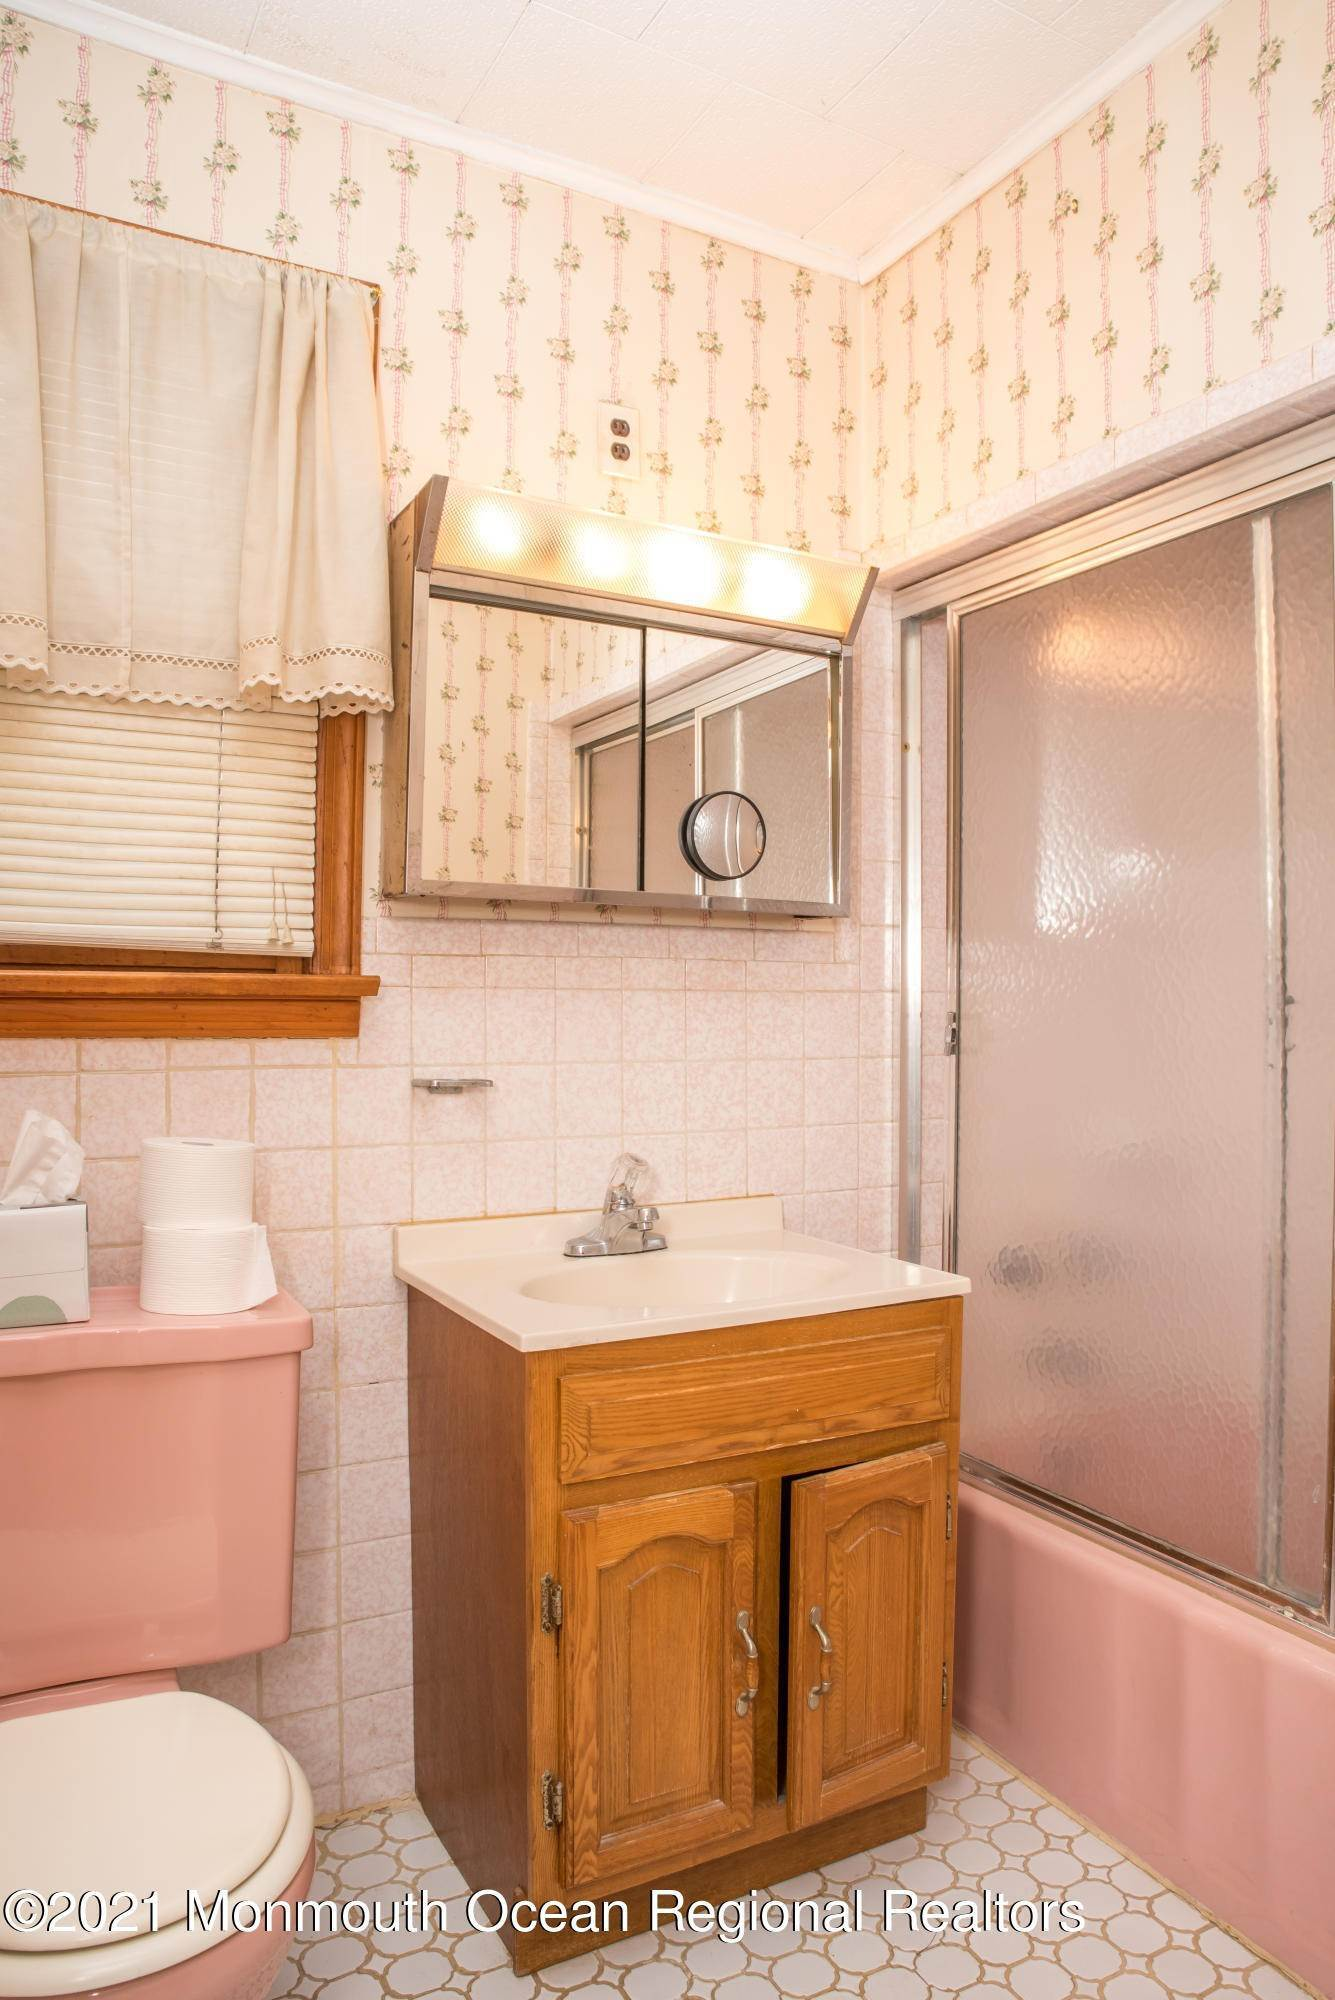 7. Single Family Homes for Sale at 125 Hancock Avenue Seaside Heights, New Jersey 08751 United States